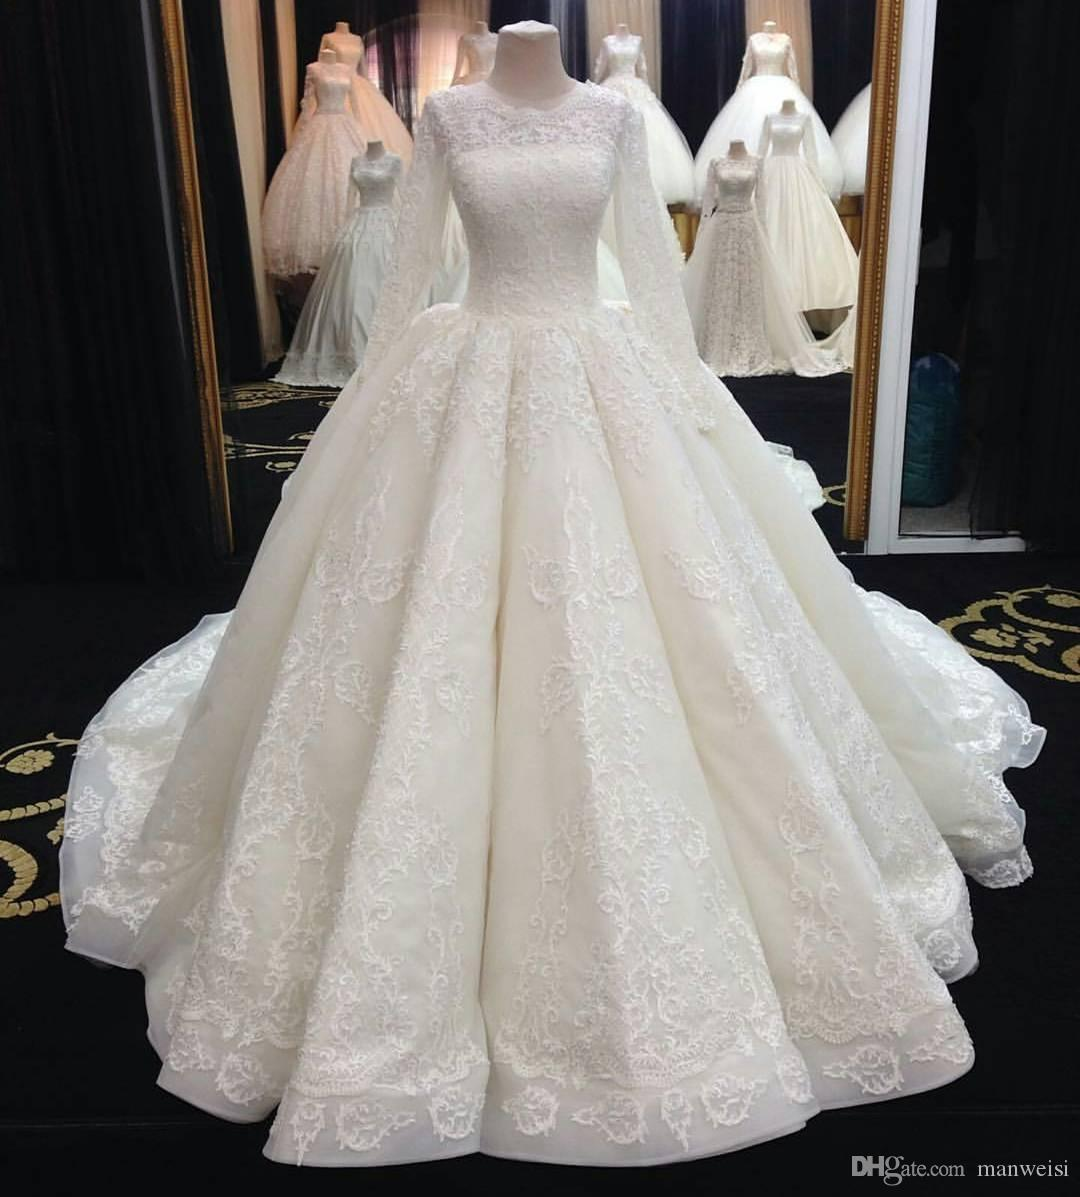 middle east 2017 muslim wedding dresses long sleeve lace applique bridal  gowns plus size cheap ball gown dress wedding gowns online wedding gowns  with